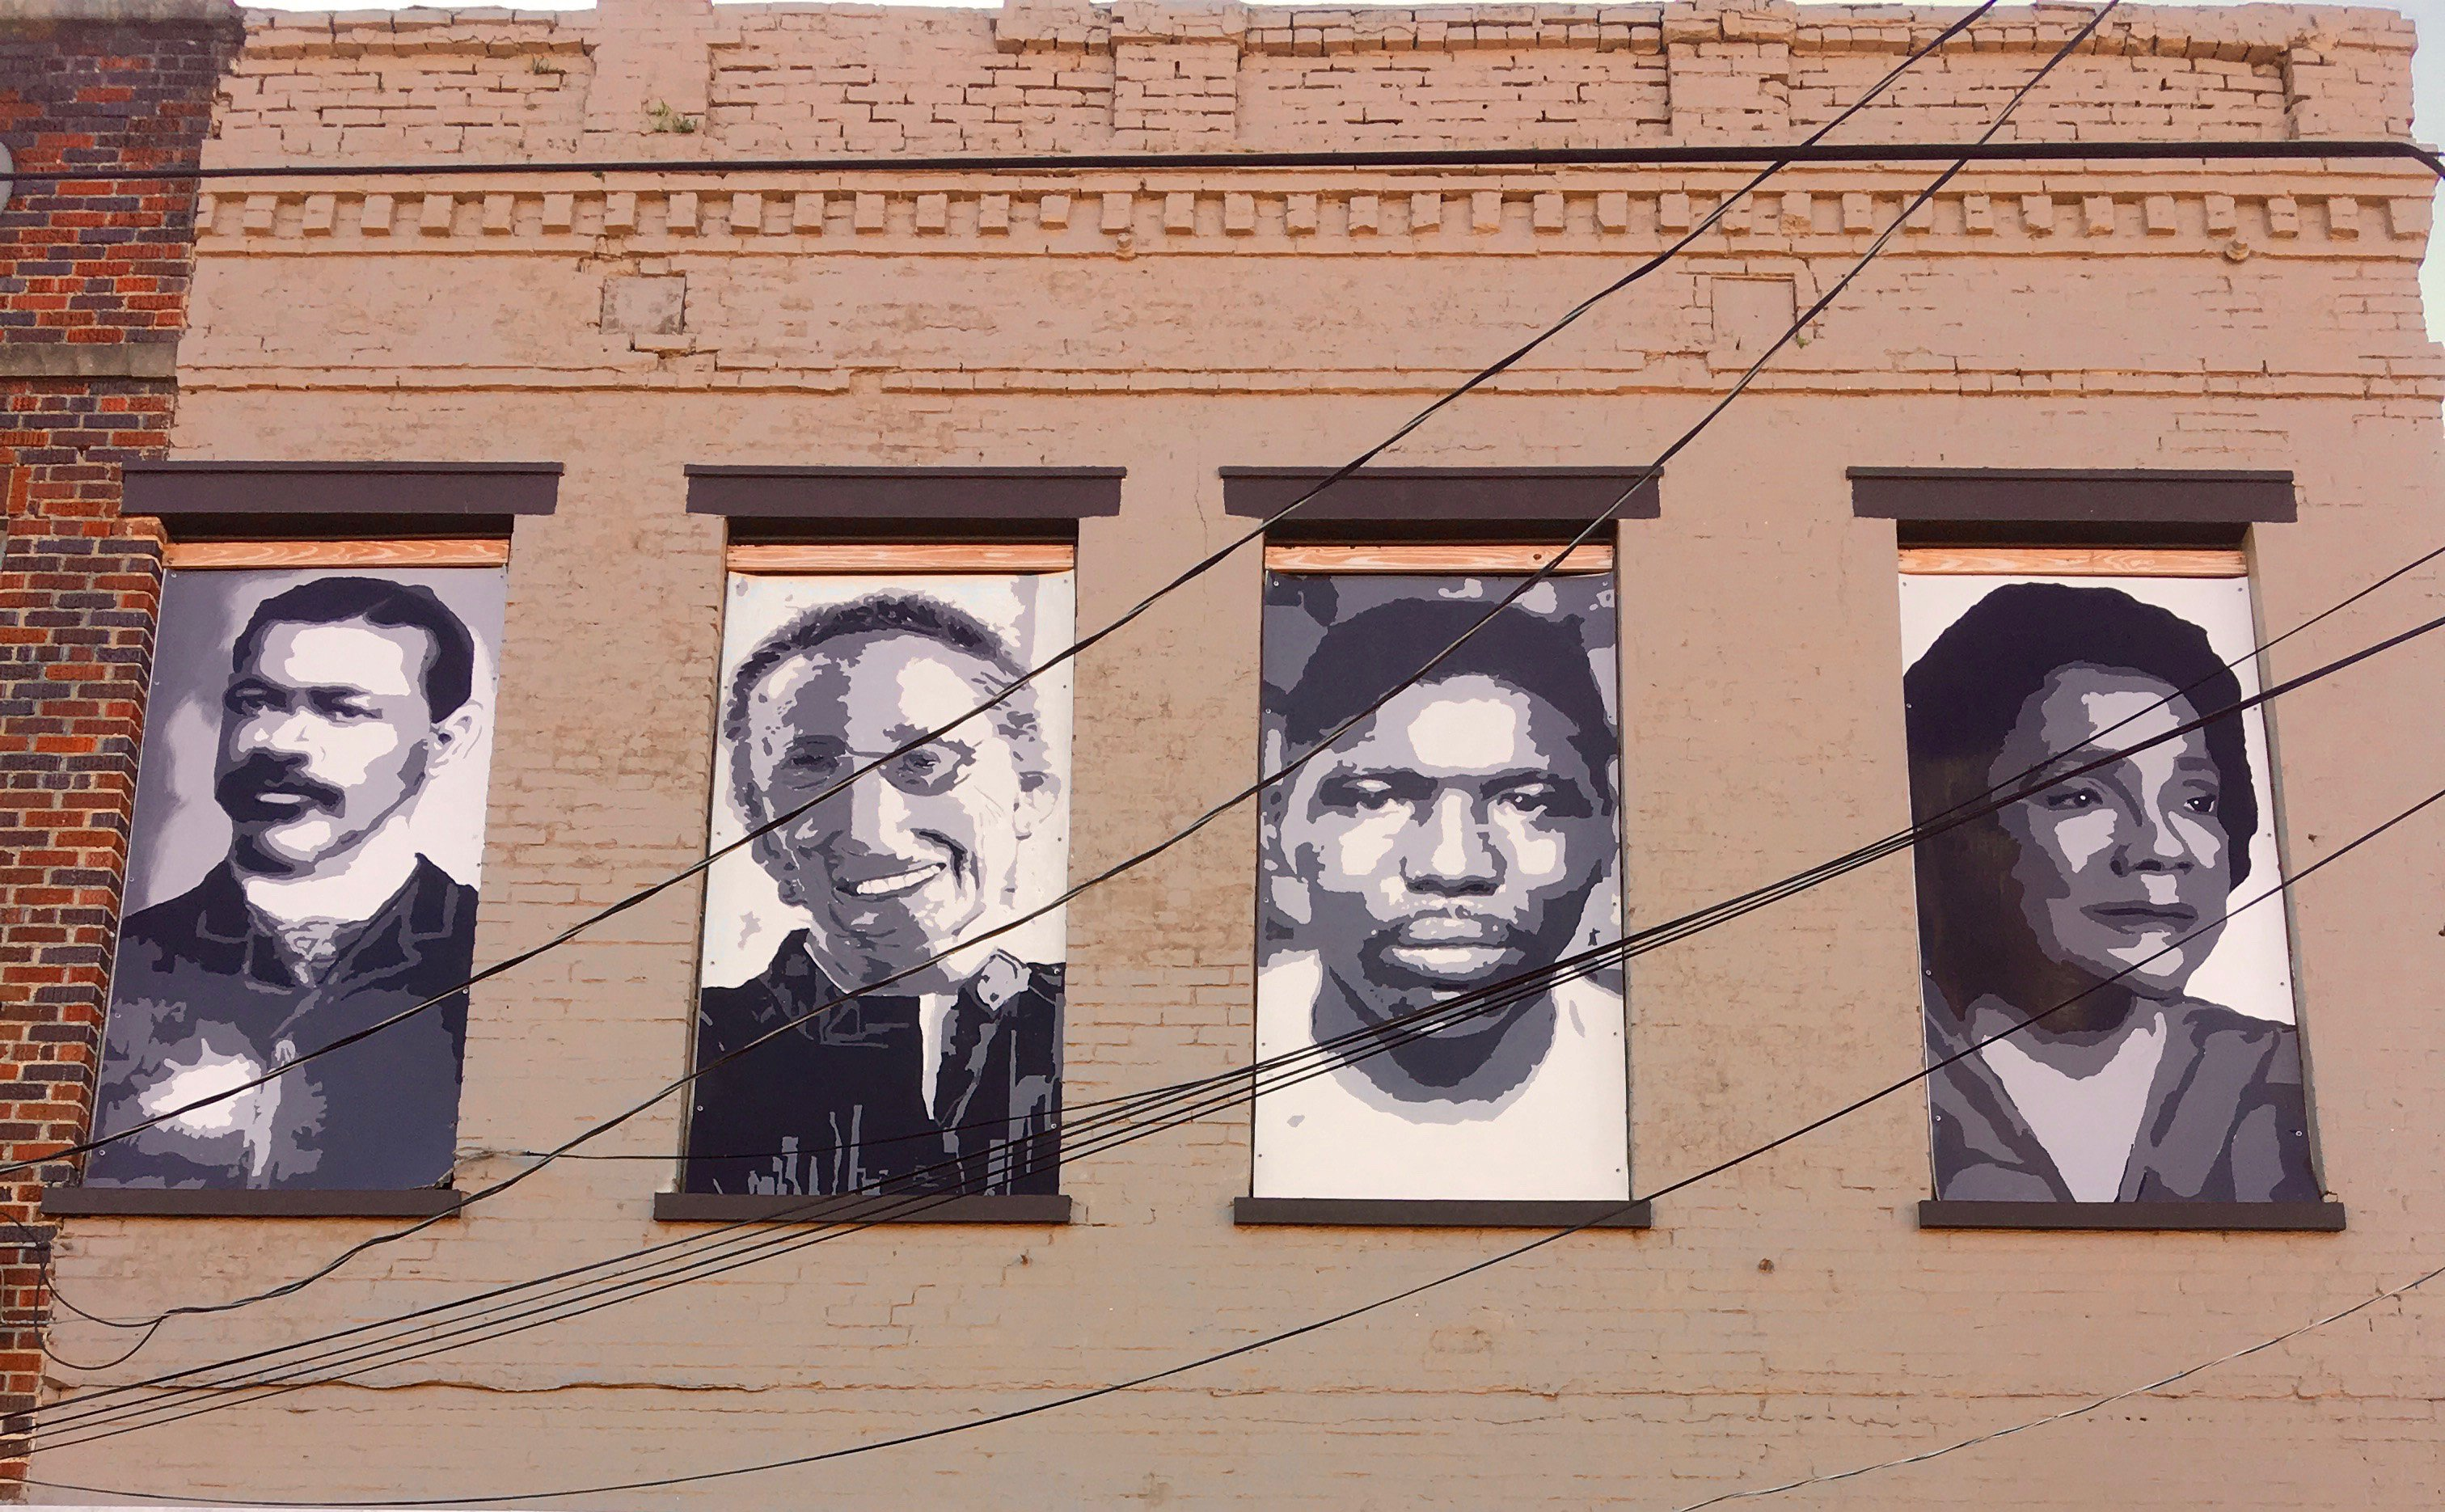 A mural in Marion's square honouring Stephen Childs, Mary Ward Brown, Jimmie Lee Jackson and...